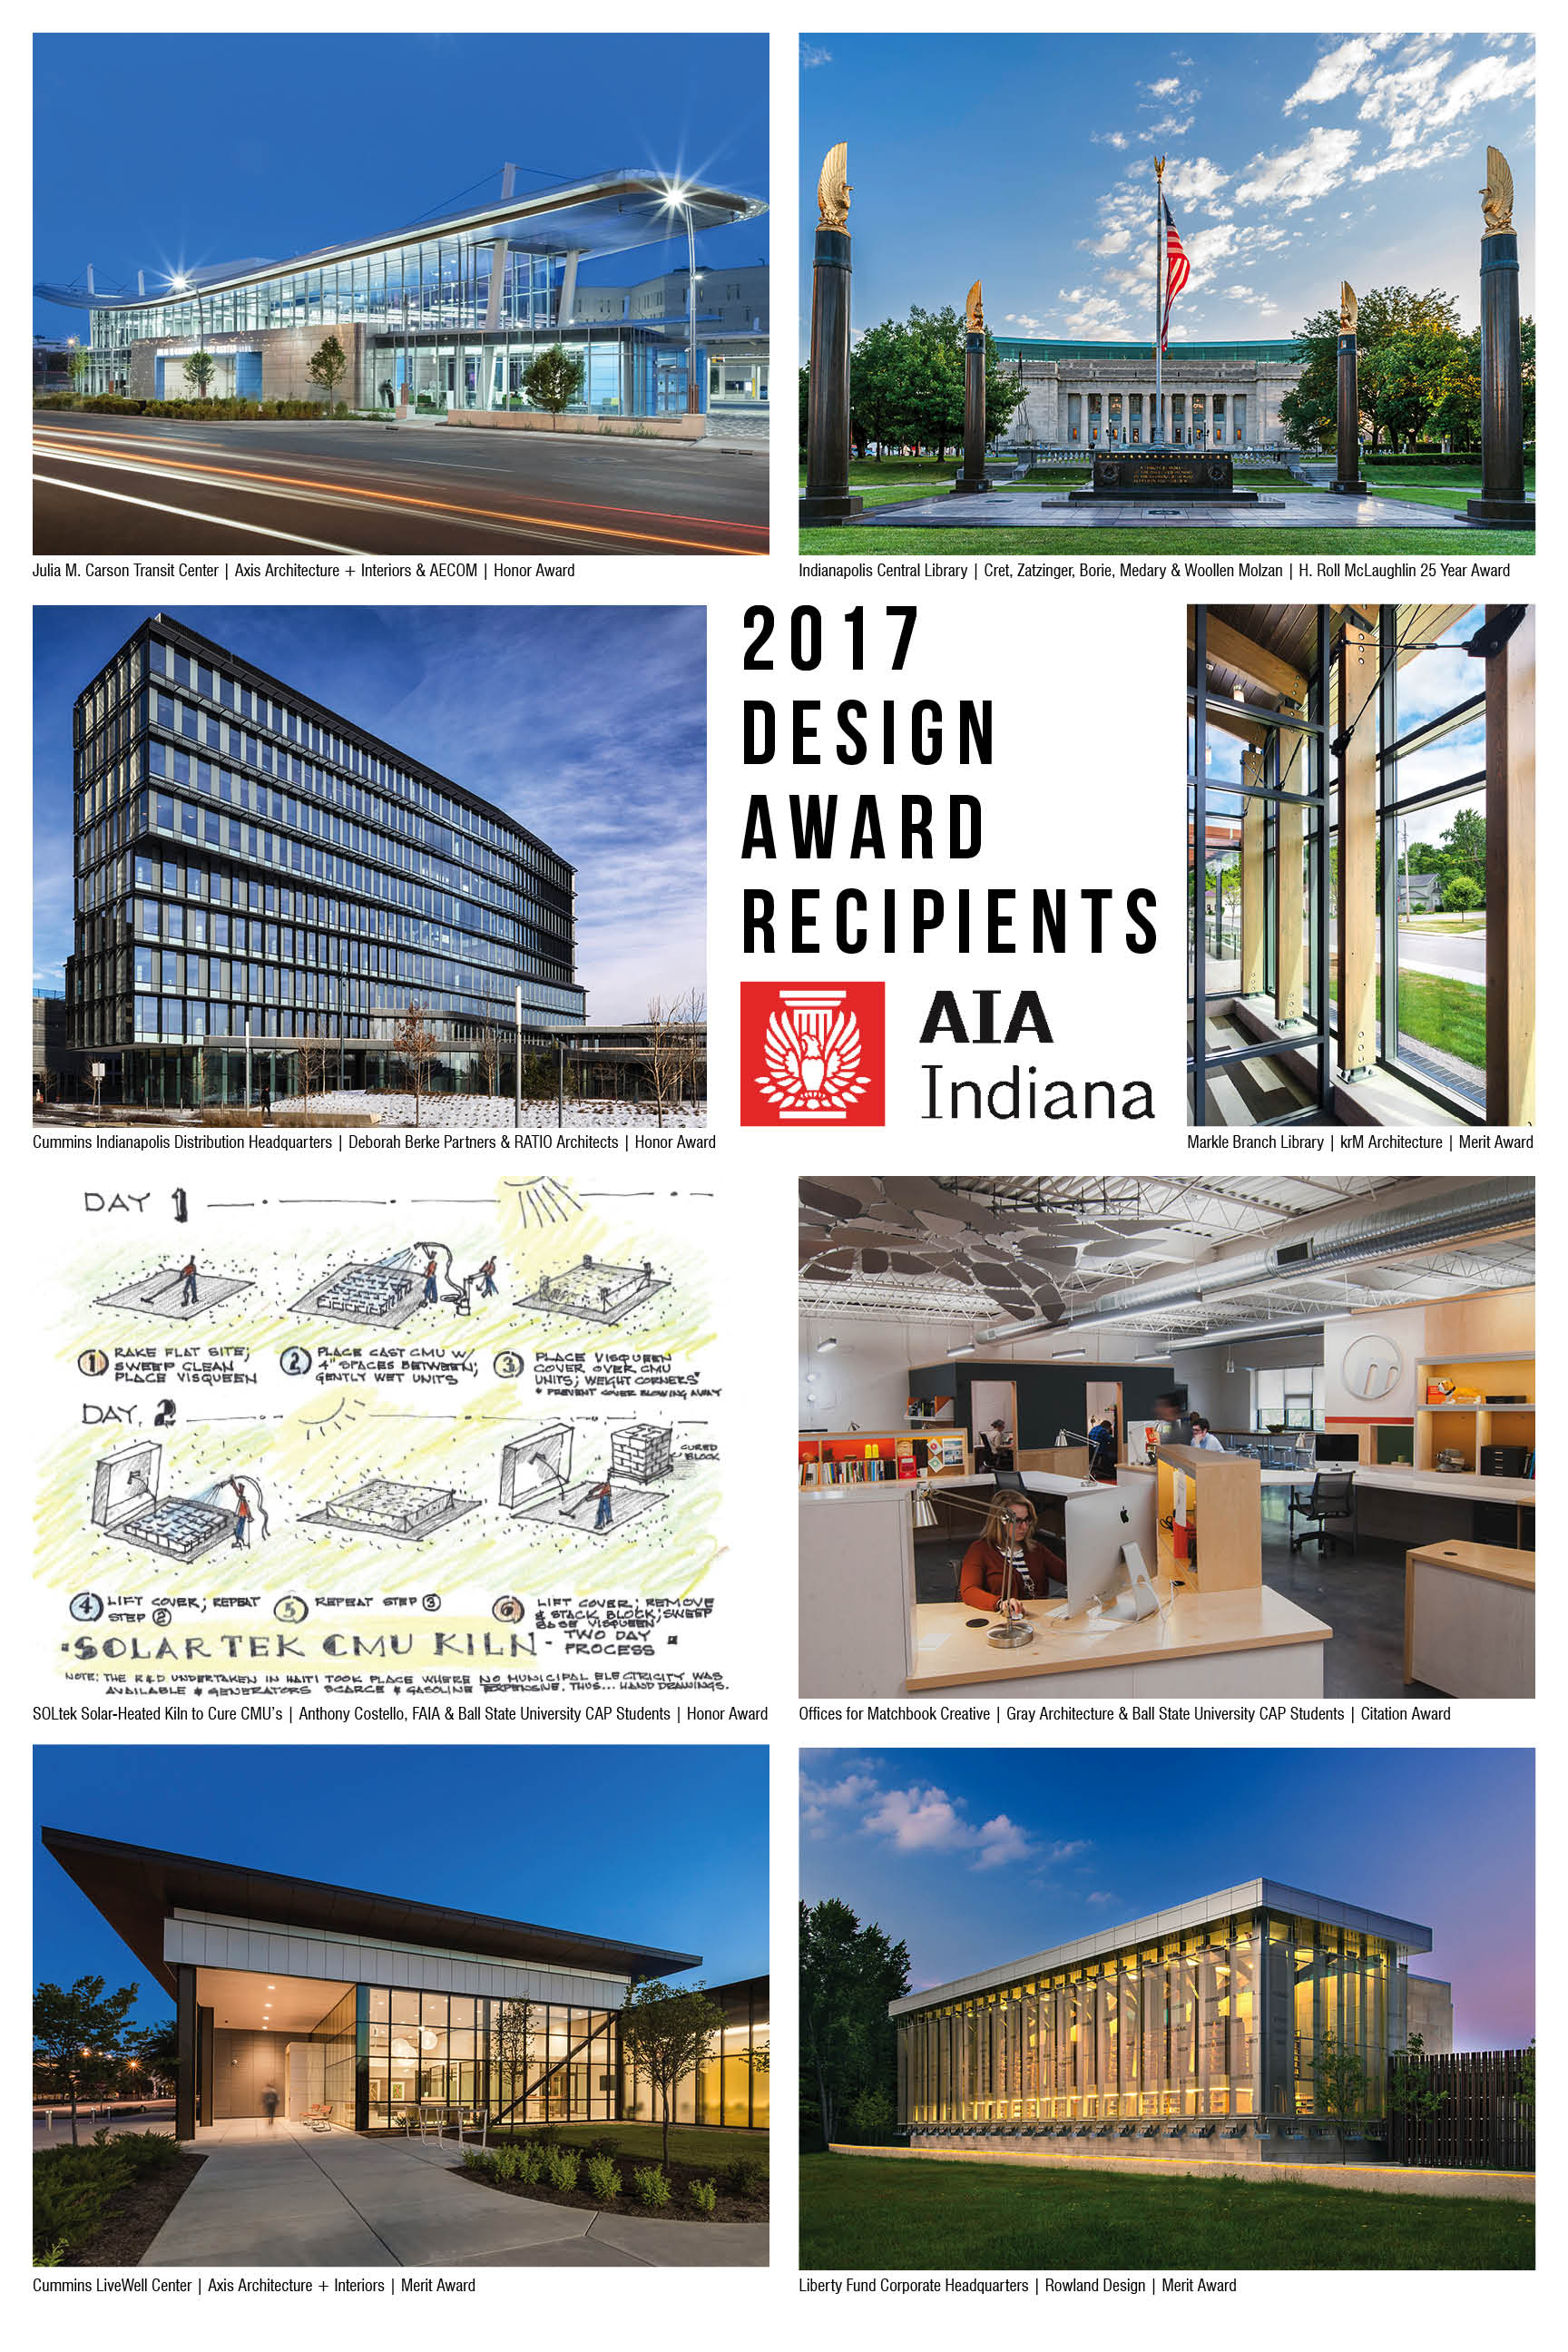 2017 AIA Compiled Board 24x36